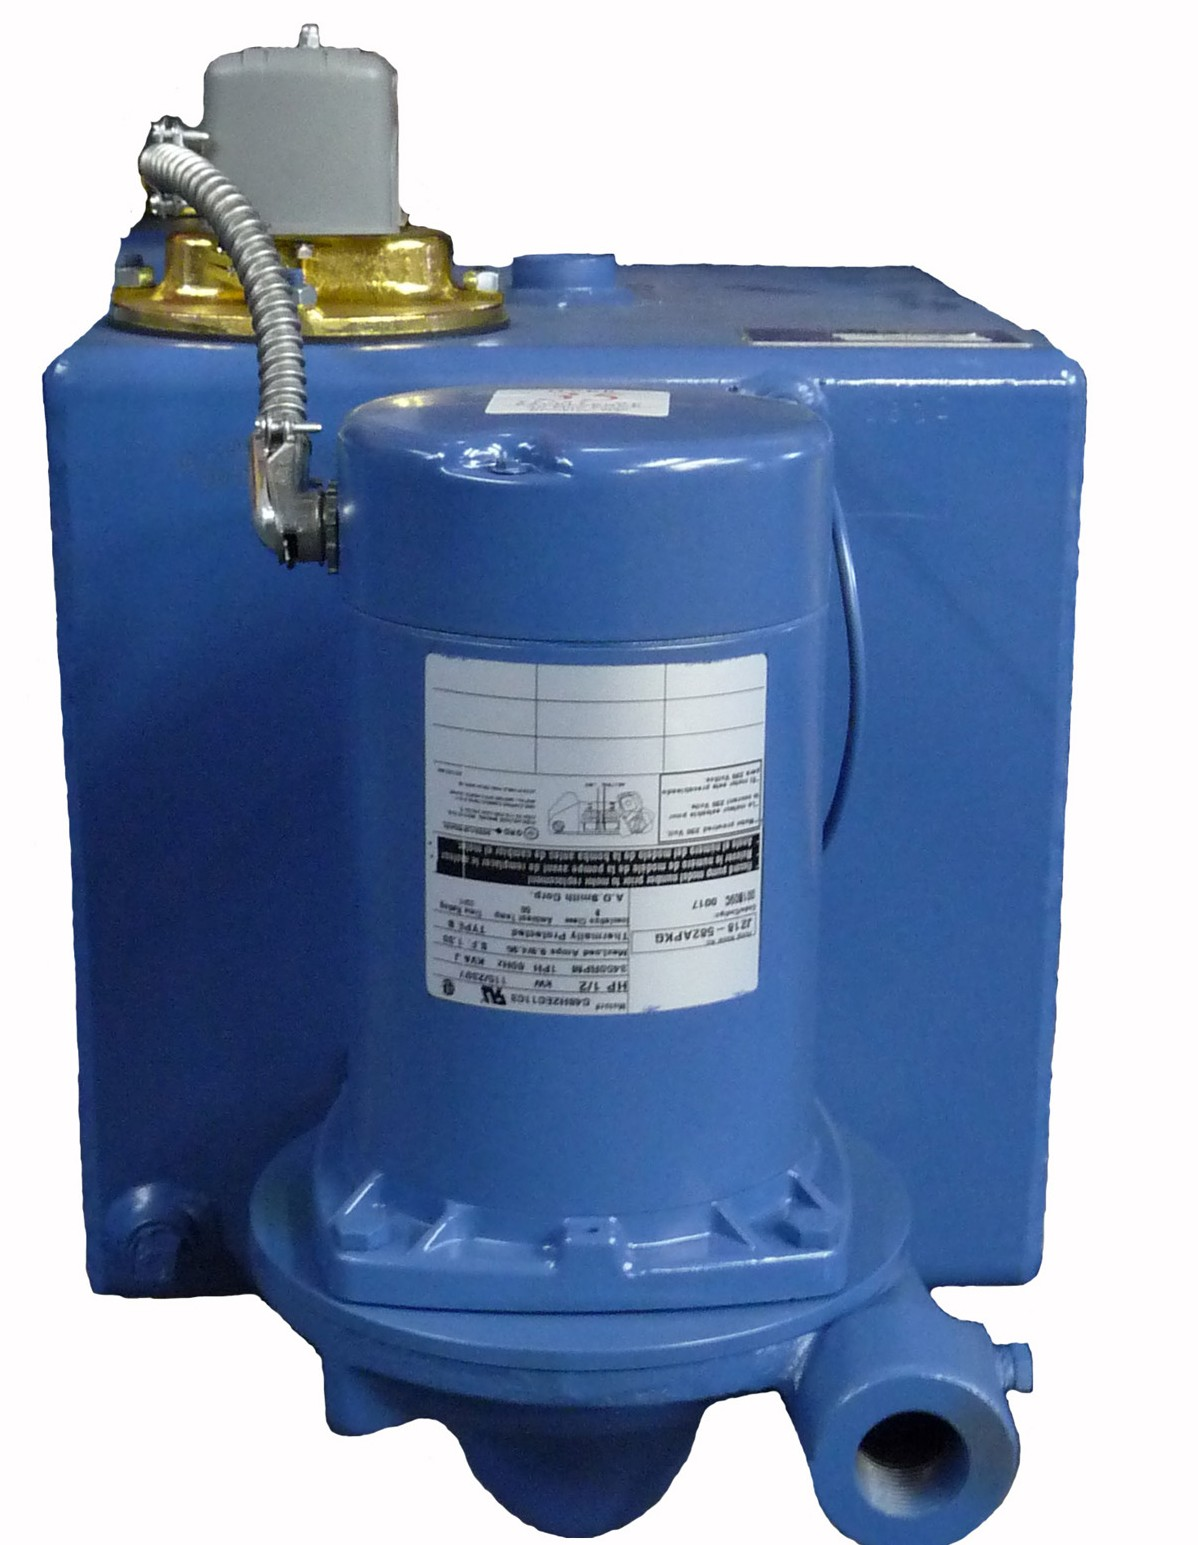 Airflow Pump 10 Gallon Condensate Unit